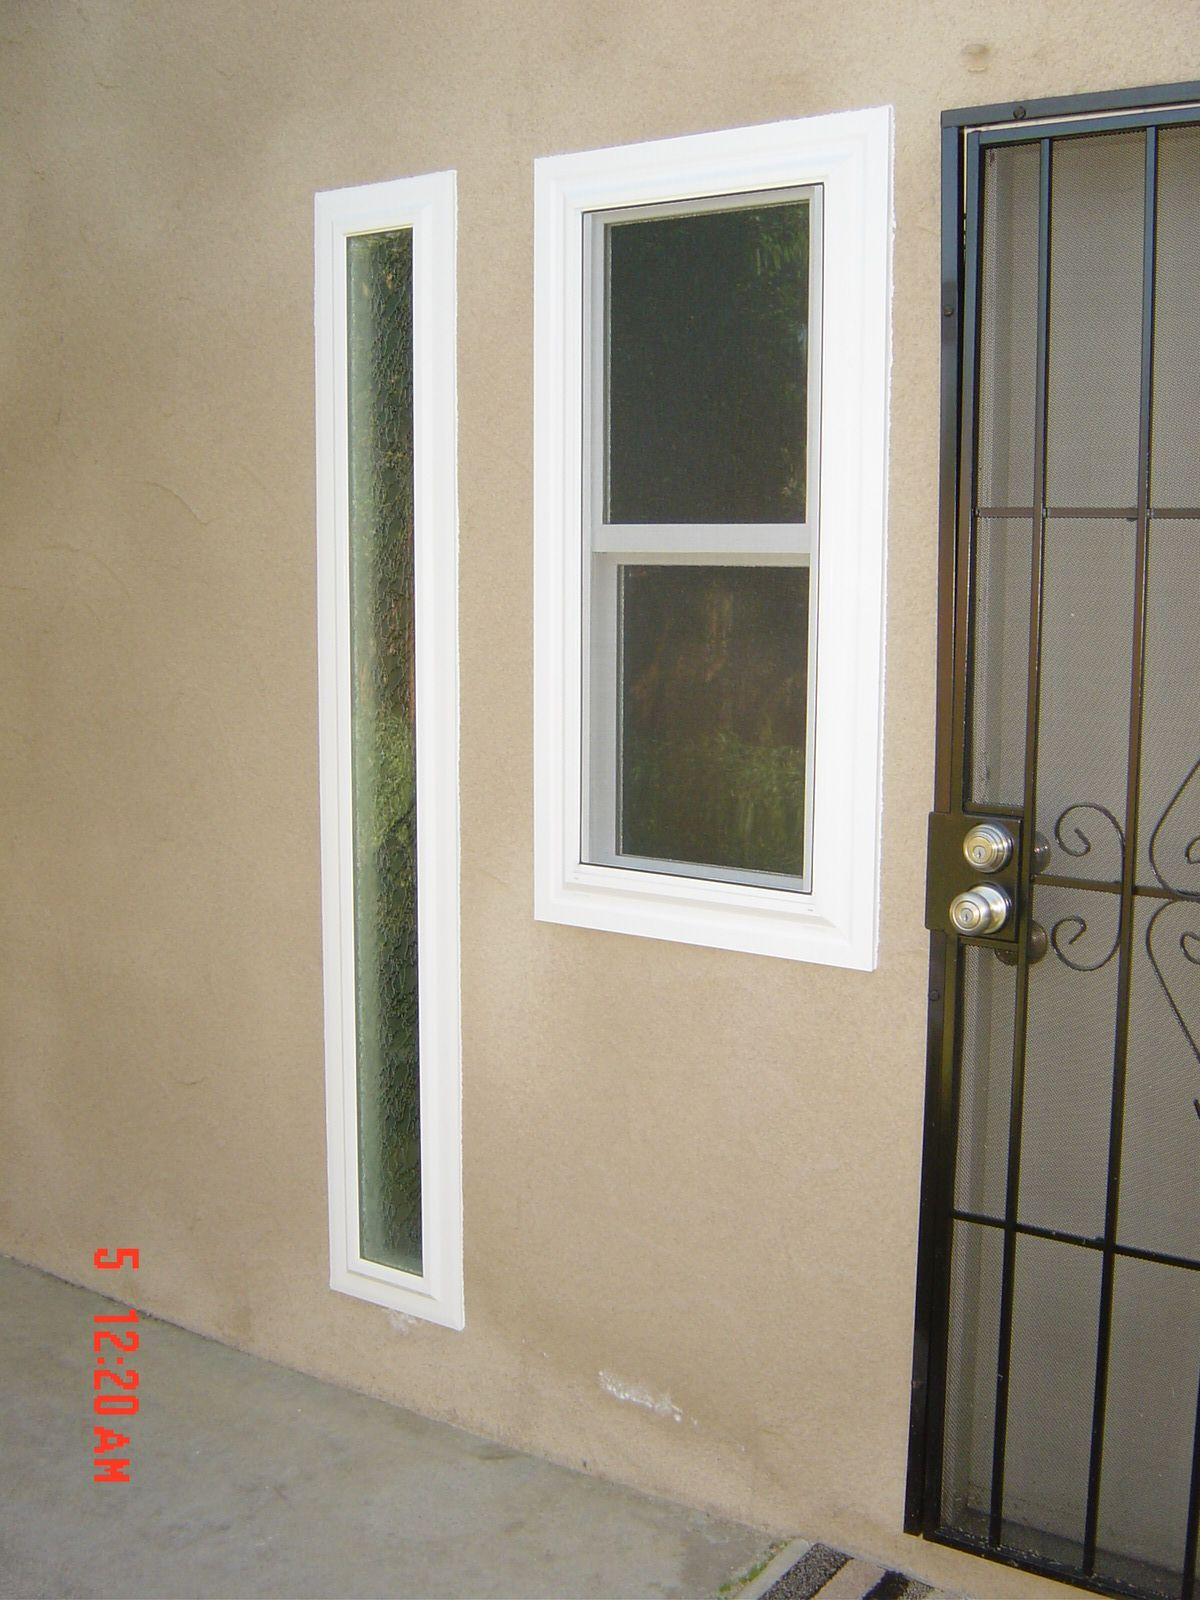 Contact Us About New Windows Doors And Siding Windows Replace Door Window Styles